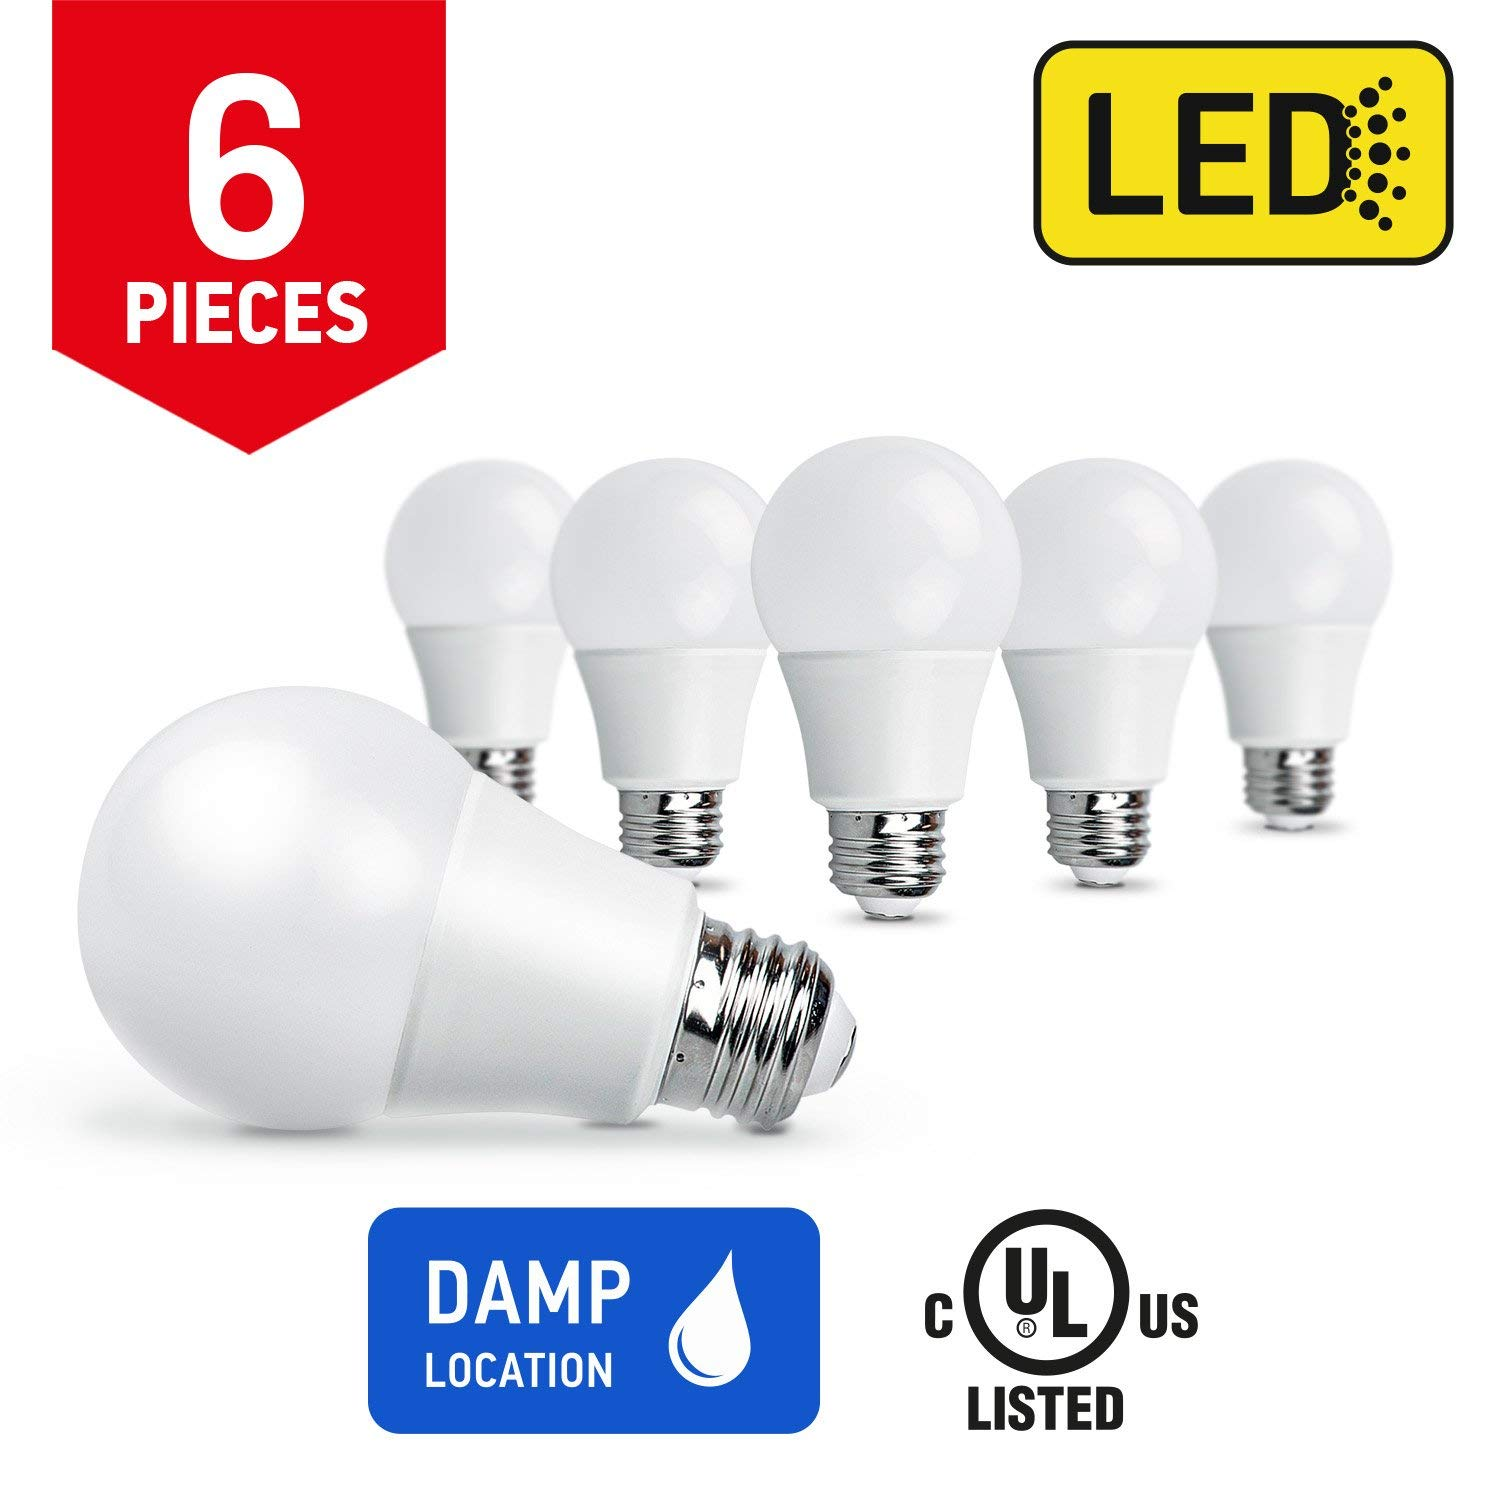 OSTWIN Non-Dimmable LED Light Bulb A19 E26 Medium Base 9W (60 Watt Equivalent) 800lm 3000K (Warm White) 6-pack, UL listed